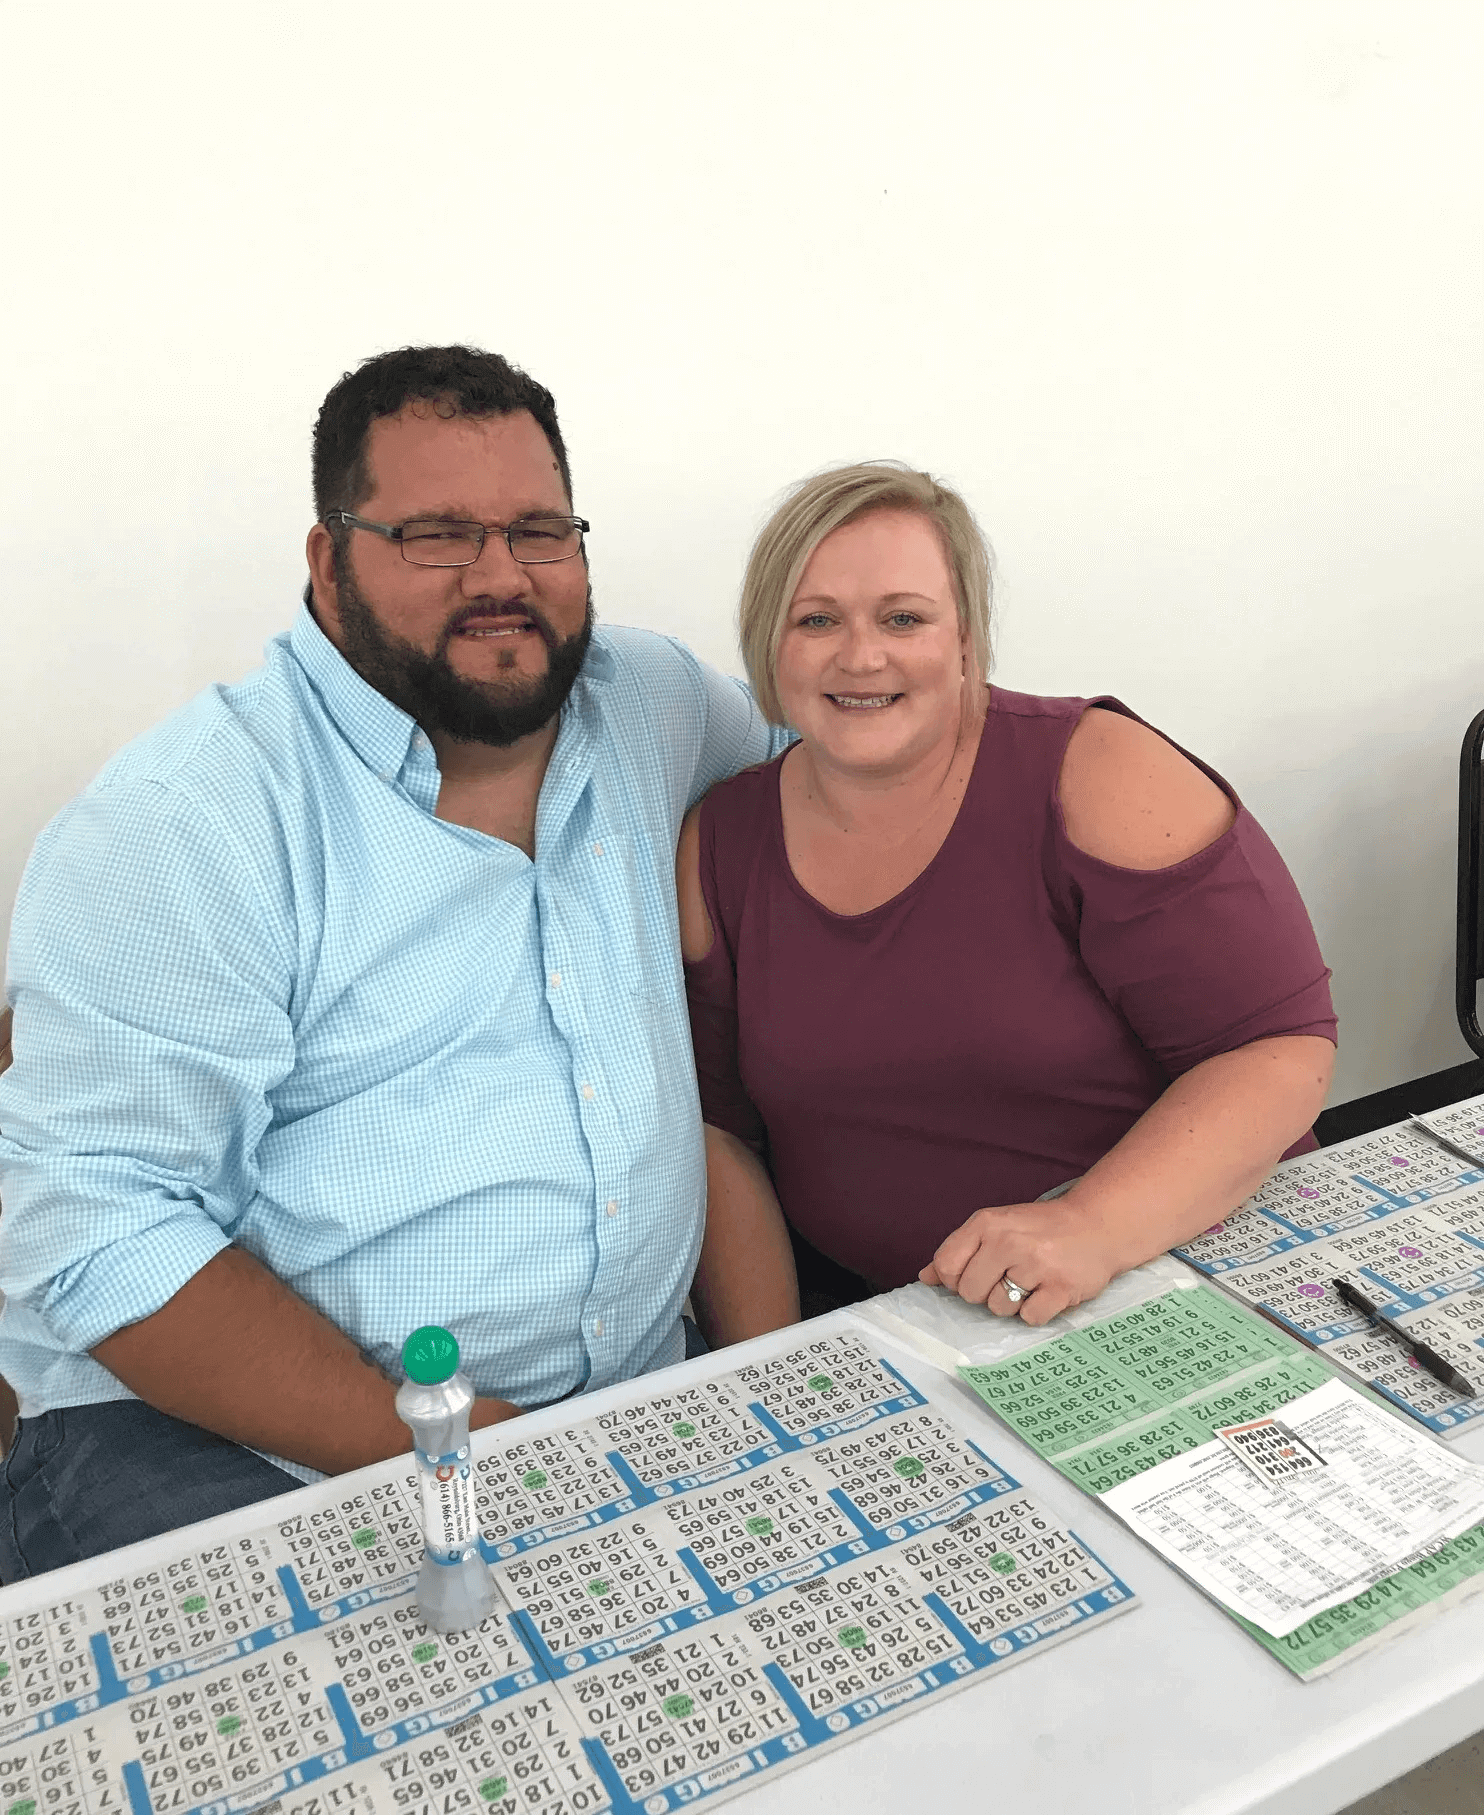 couples are happy playing bingo